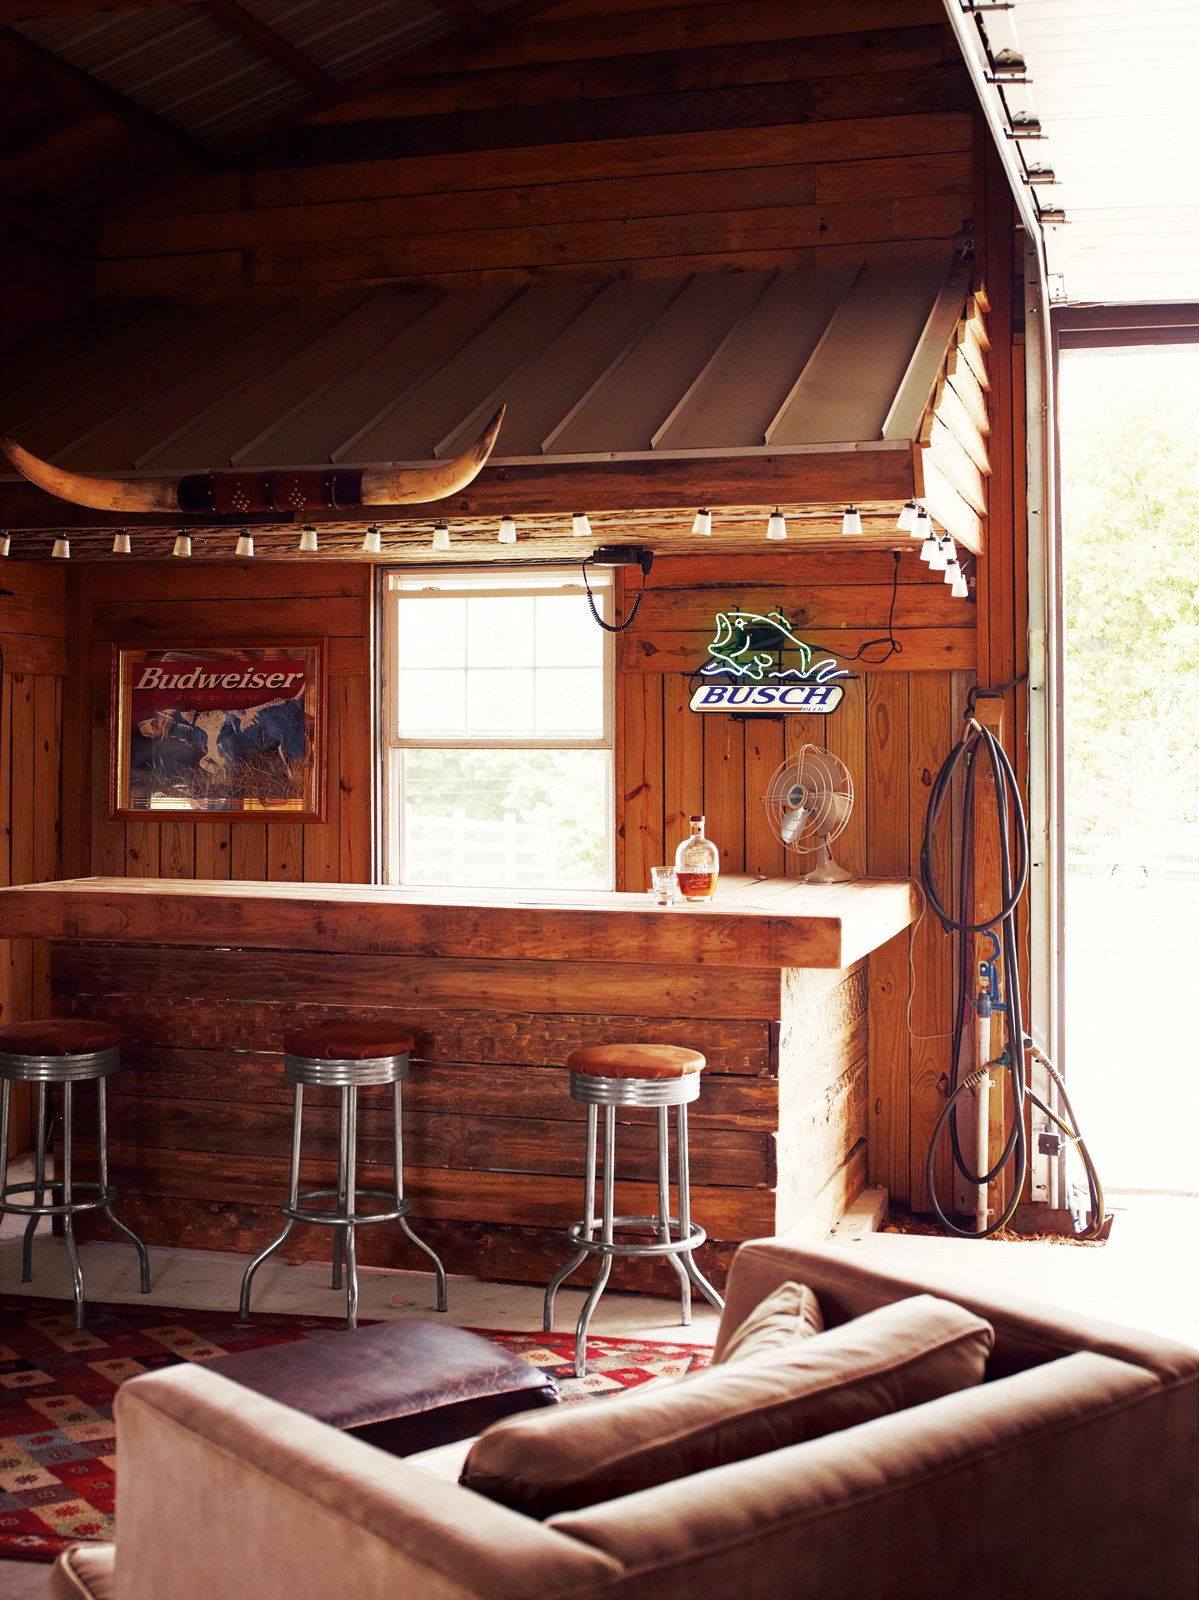 Dining Room, Bar, Chair, Stools, Rug Floor, and Ceiling Lighting Inside, Paul often dispenses whiskey to friends from behind the rustic bar.  Photo 6 of 10 in A Modern Farmhouse Recalls Old-Time Americana